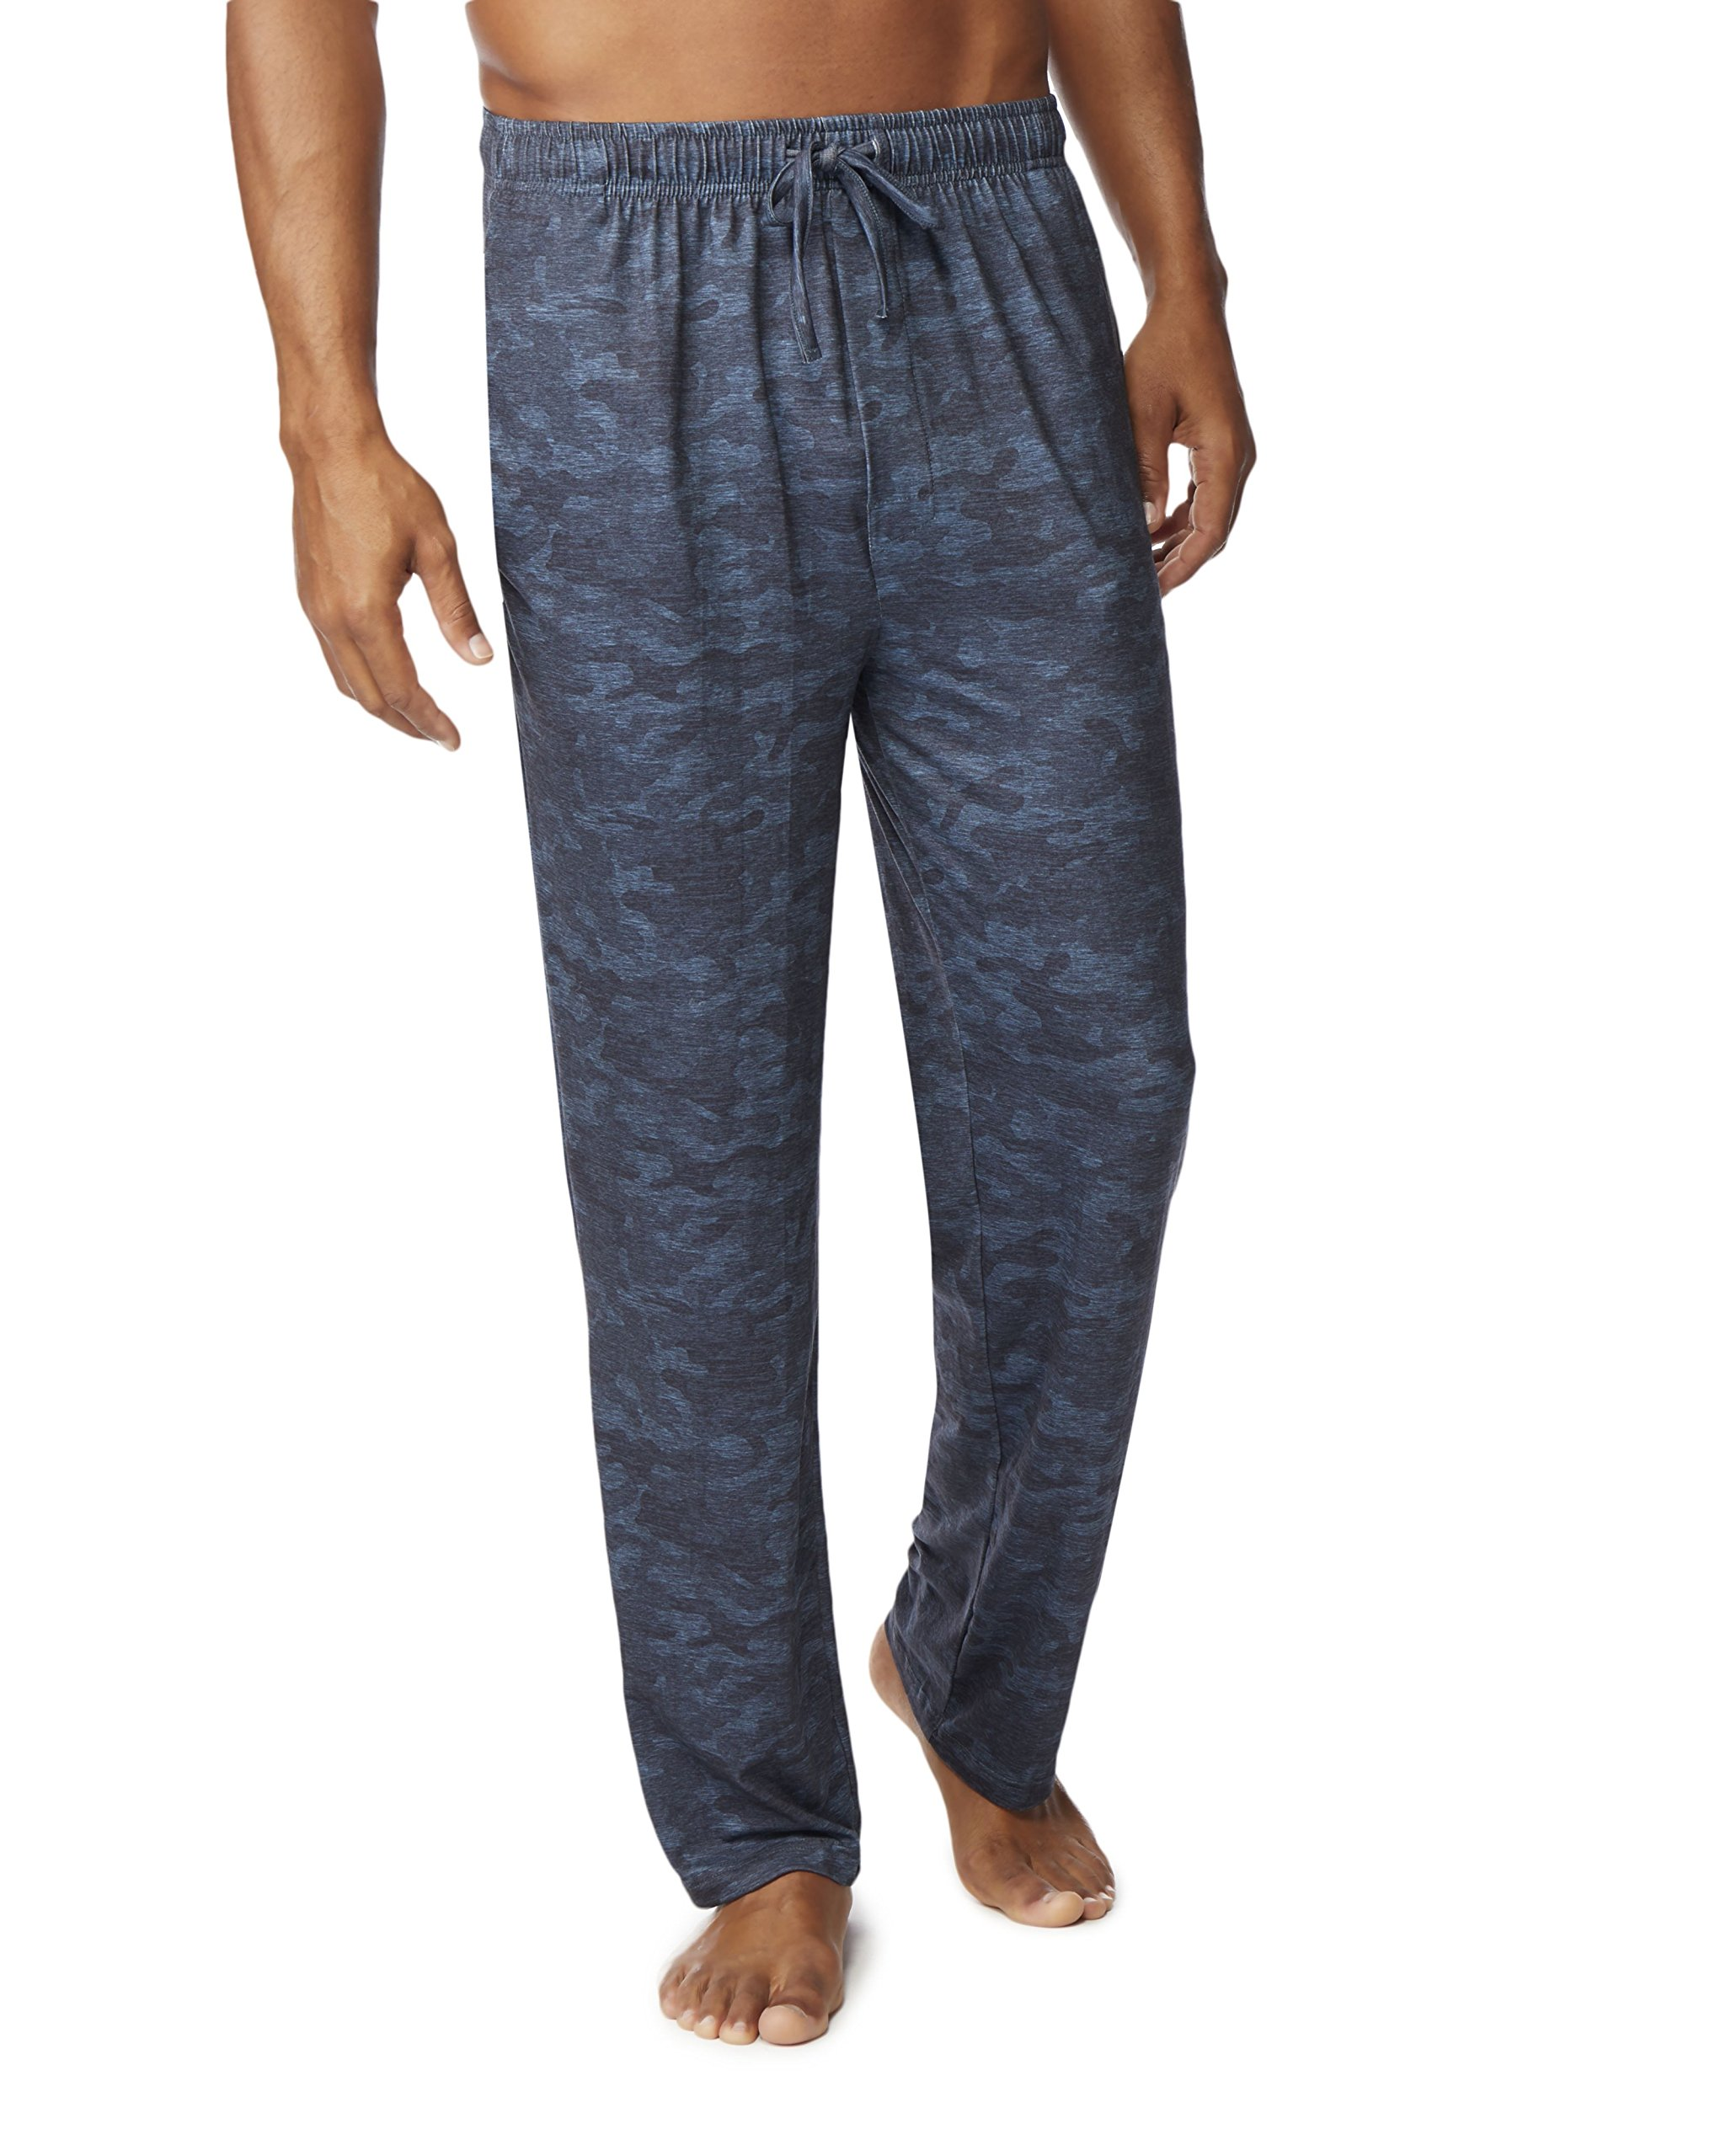 32 DEGREES Mens Cool Knit Wicking Lounge Pant, Midnight CAMO, Small